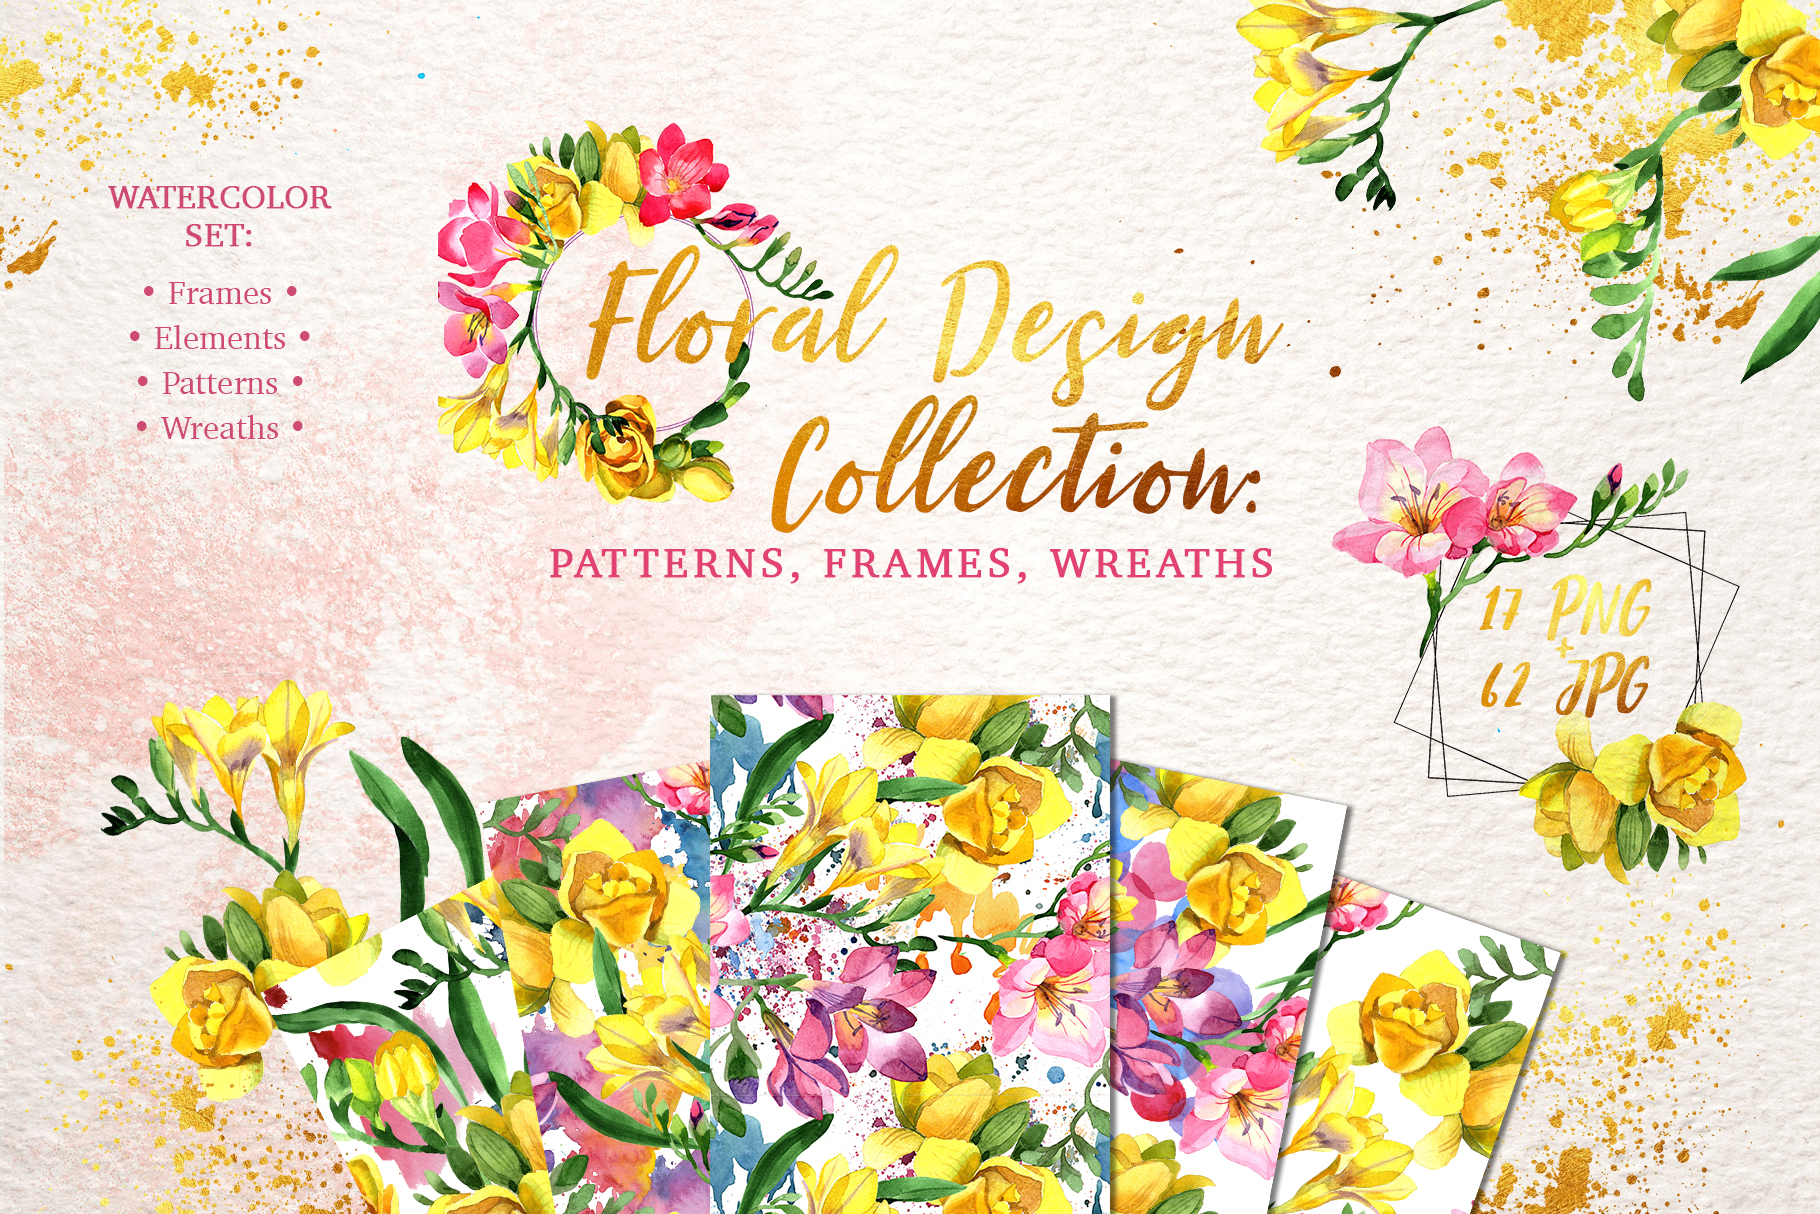 Floral Design collection watercolor png example image 1